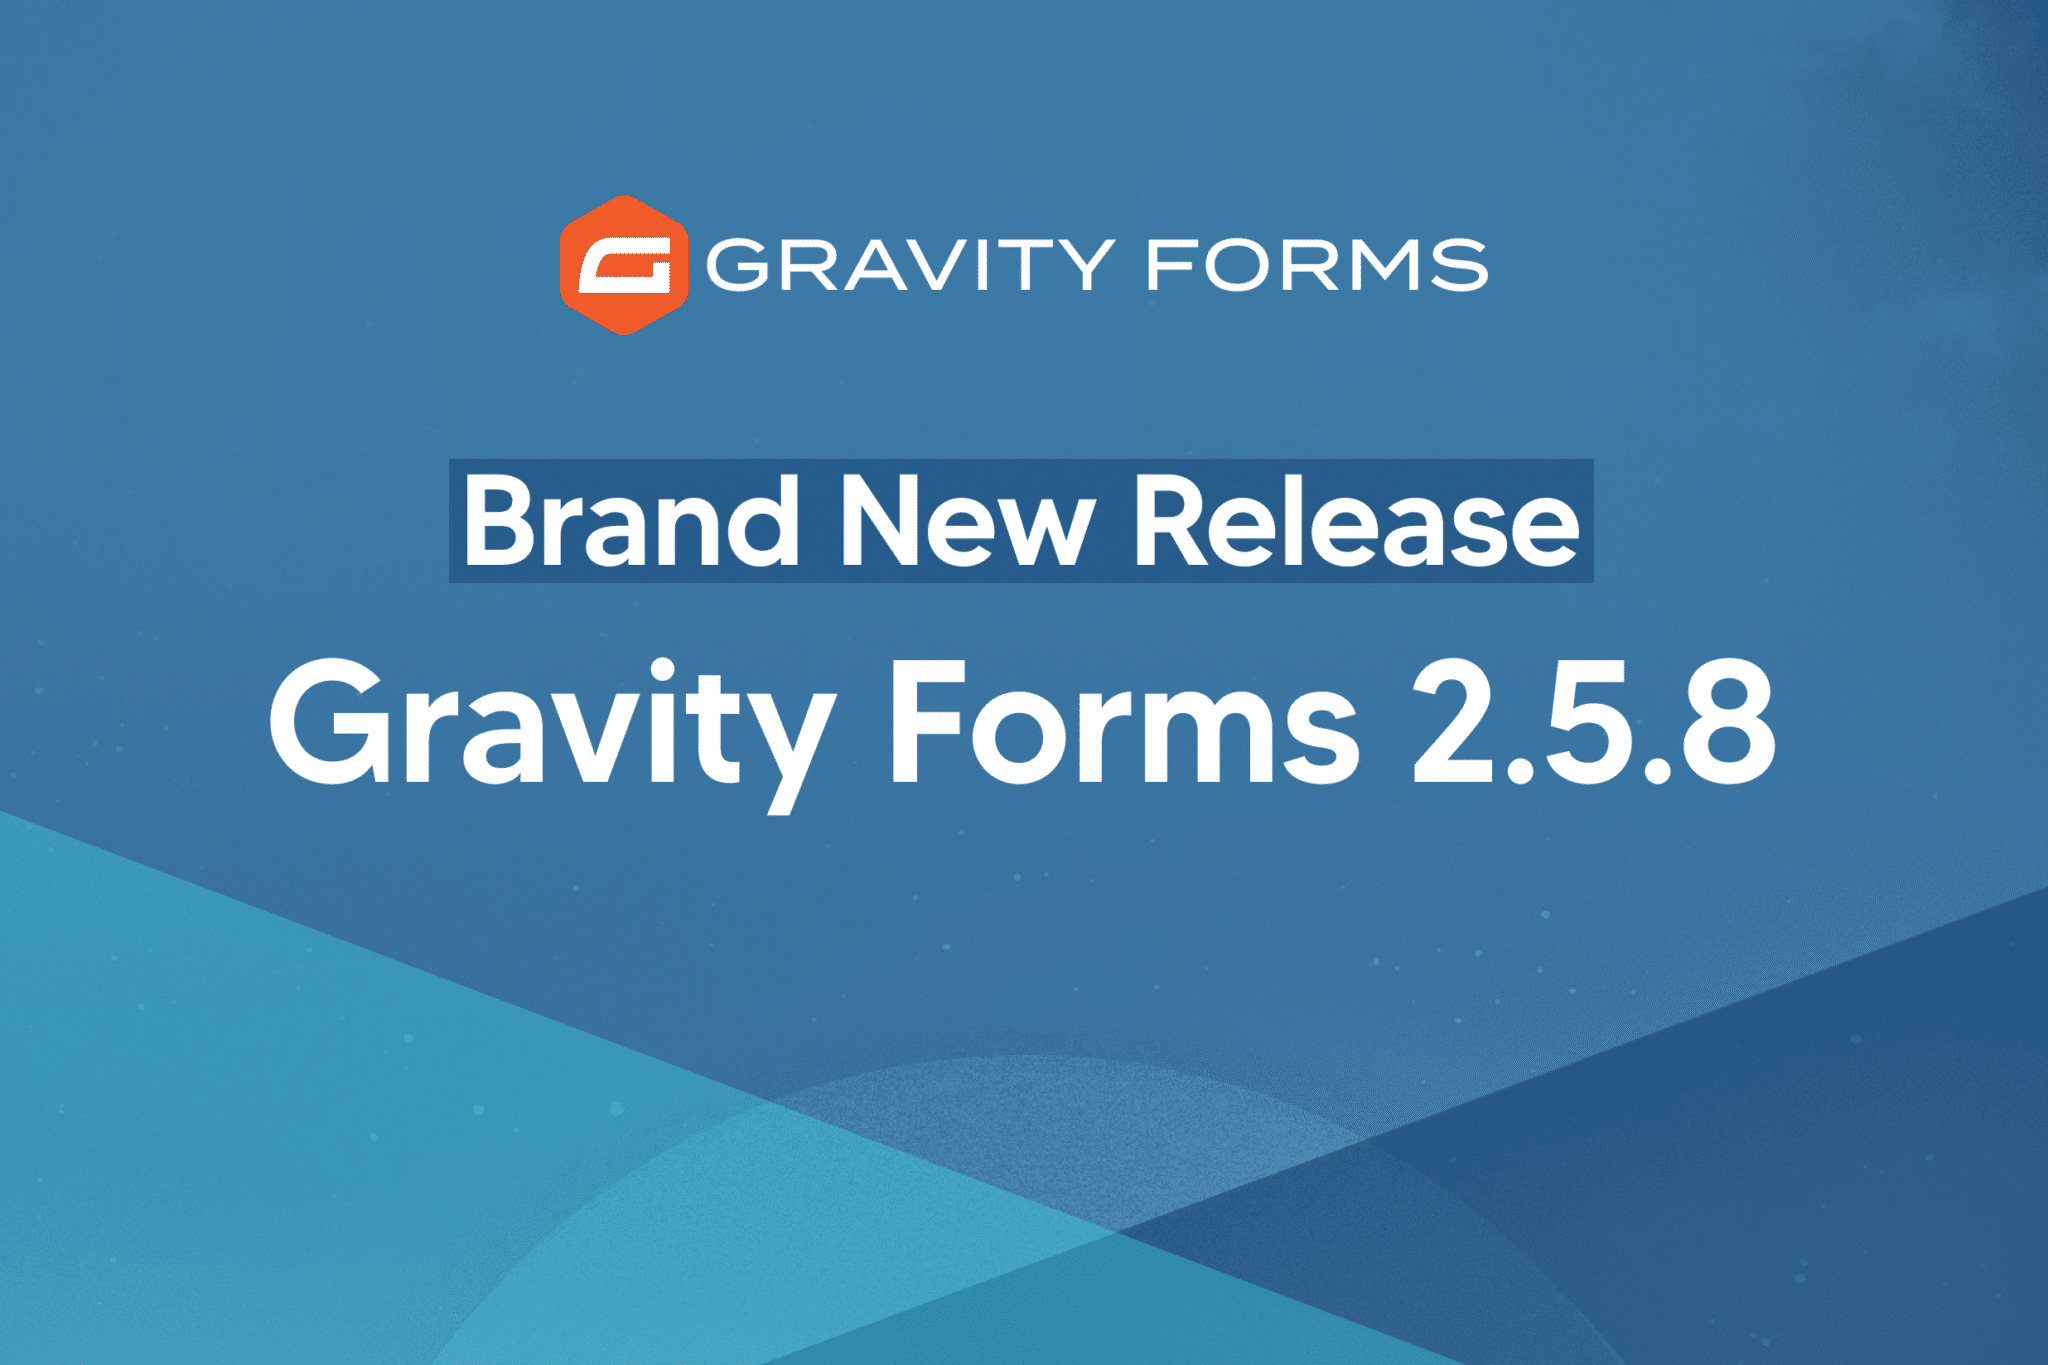 Brand New Release: Gravity Forms 2.5.8